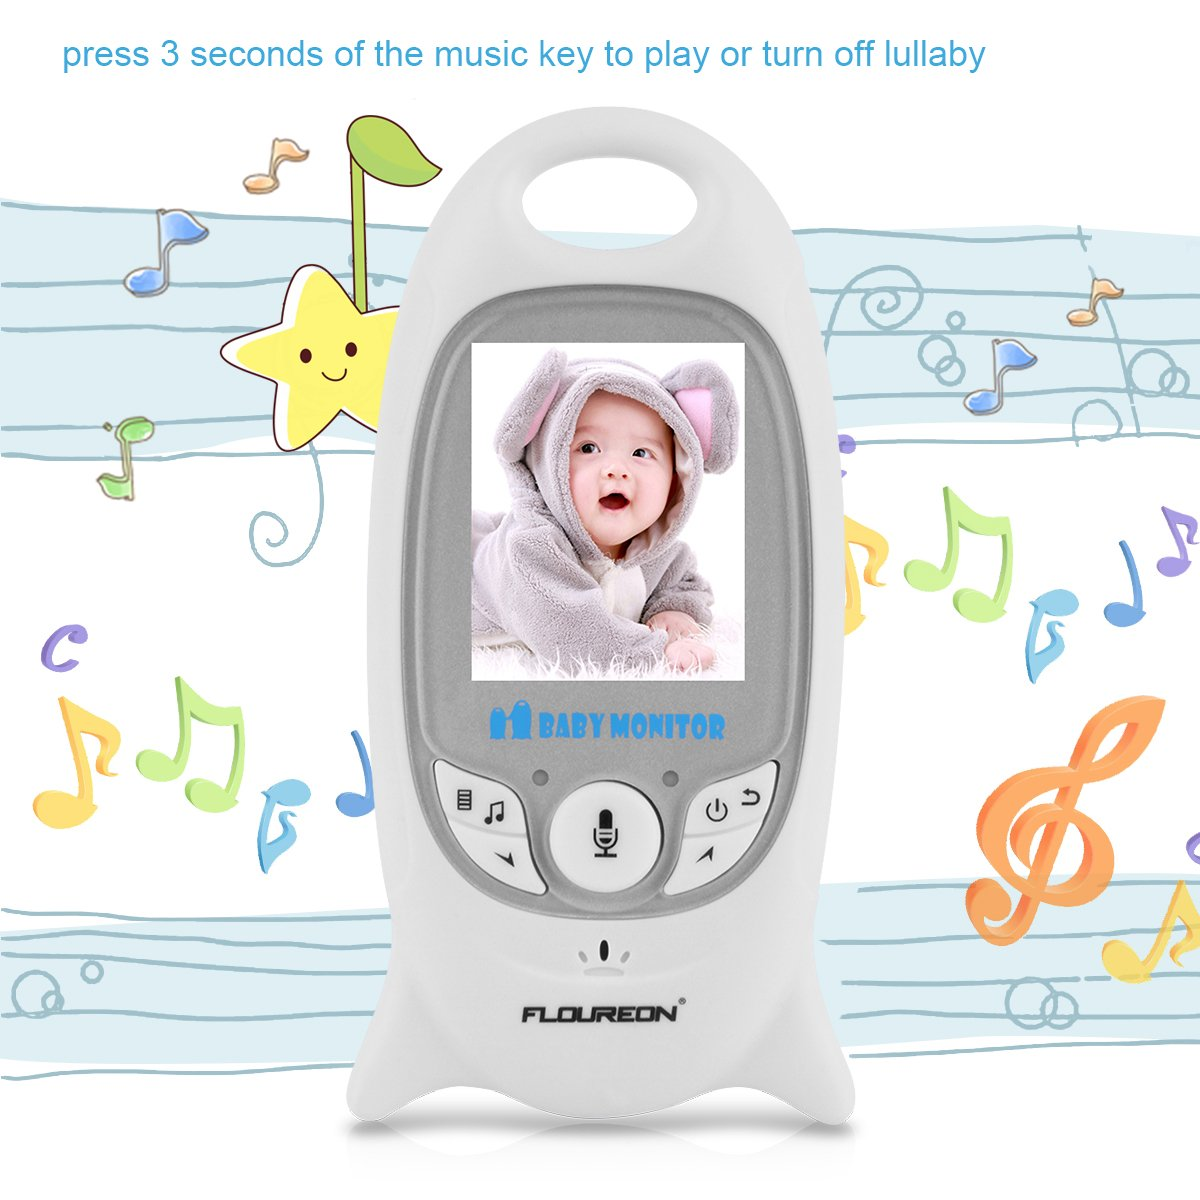 FLOUREON Wireless Baby Monitor IP Camera with Two Way talk 2.0 Inch LCD Digital Screen/Automatic Night Vision Security Camera/Temperature Monitoring/Lullabies Radio